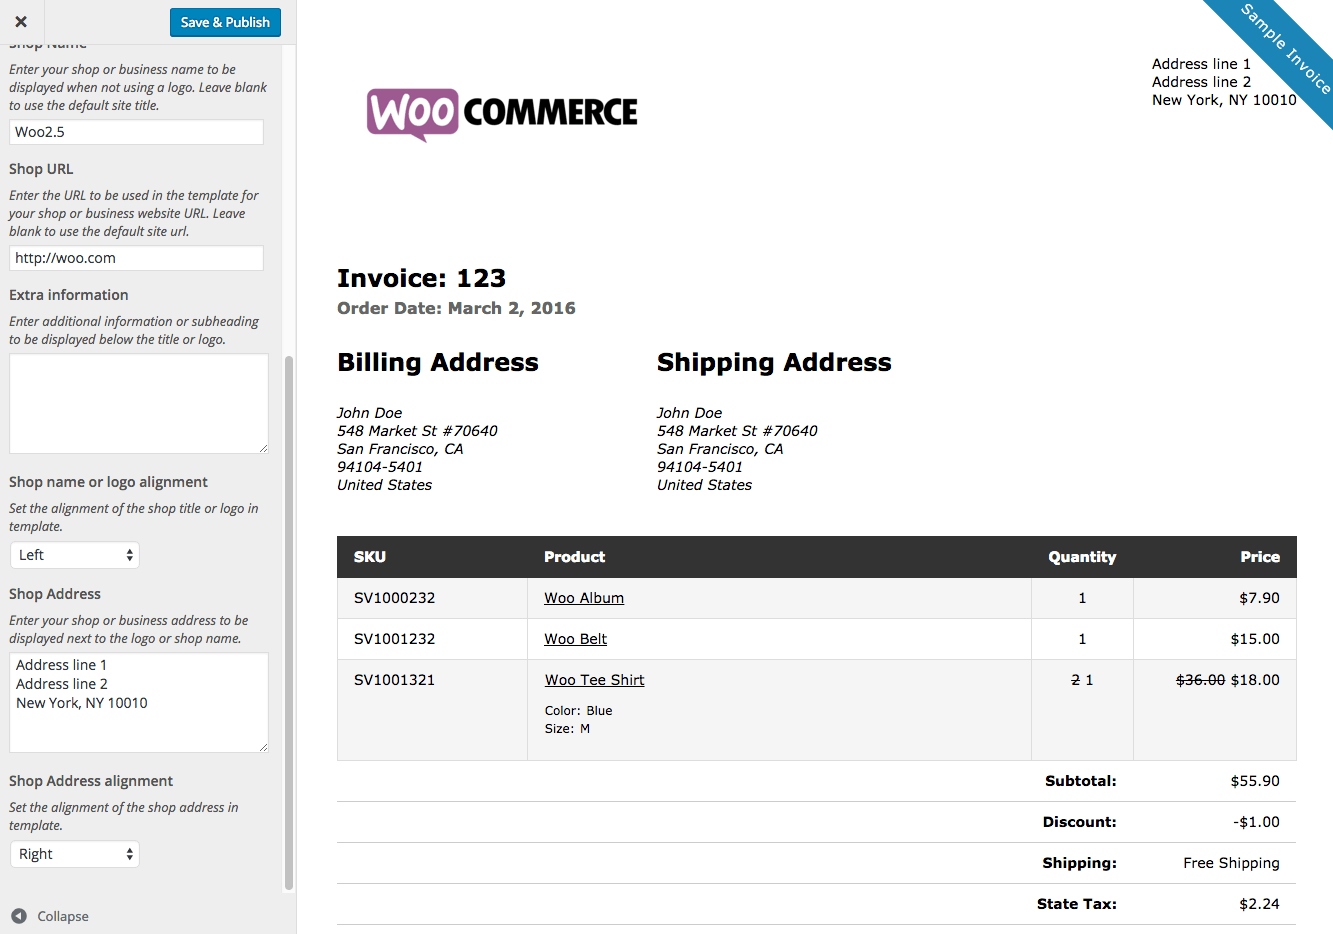 Modaoxus  Pretty Woocommerce Print Invoices Amp Packing Lists  Woocommerce Docs With Gorgeous Woocommerce Print Invoices  Packing Lists Customizer With Lovely  Honda Civic Invoice Price Also Tax Invoice Excel Template In Addition Free Billing Invoice Templates And Top Invoicing Software As Well As How Much Is Msrp Over Dealer Invoice Additionally Specimen Of Invoice From Docswoocommercecom With Modaoxus  Gorgeous Woocommerce Print Invoices Amp Packing Lists  Woocommerce Docs With Lovely Woocommerce Print Invoices  Packing Lists Customizer And Pretty  Honda Civic Invoice Price Also Tax Invoice Excel Template In Addition Free Billing Invoice Templates From Docswoocommercecom